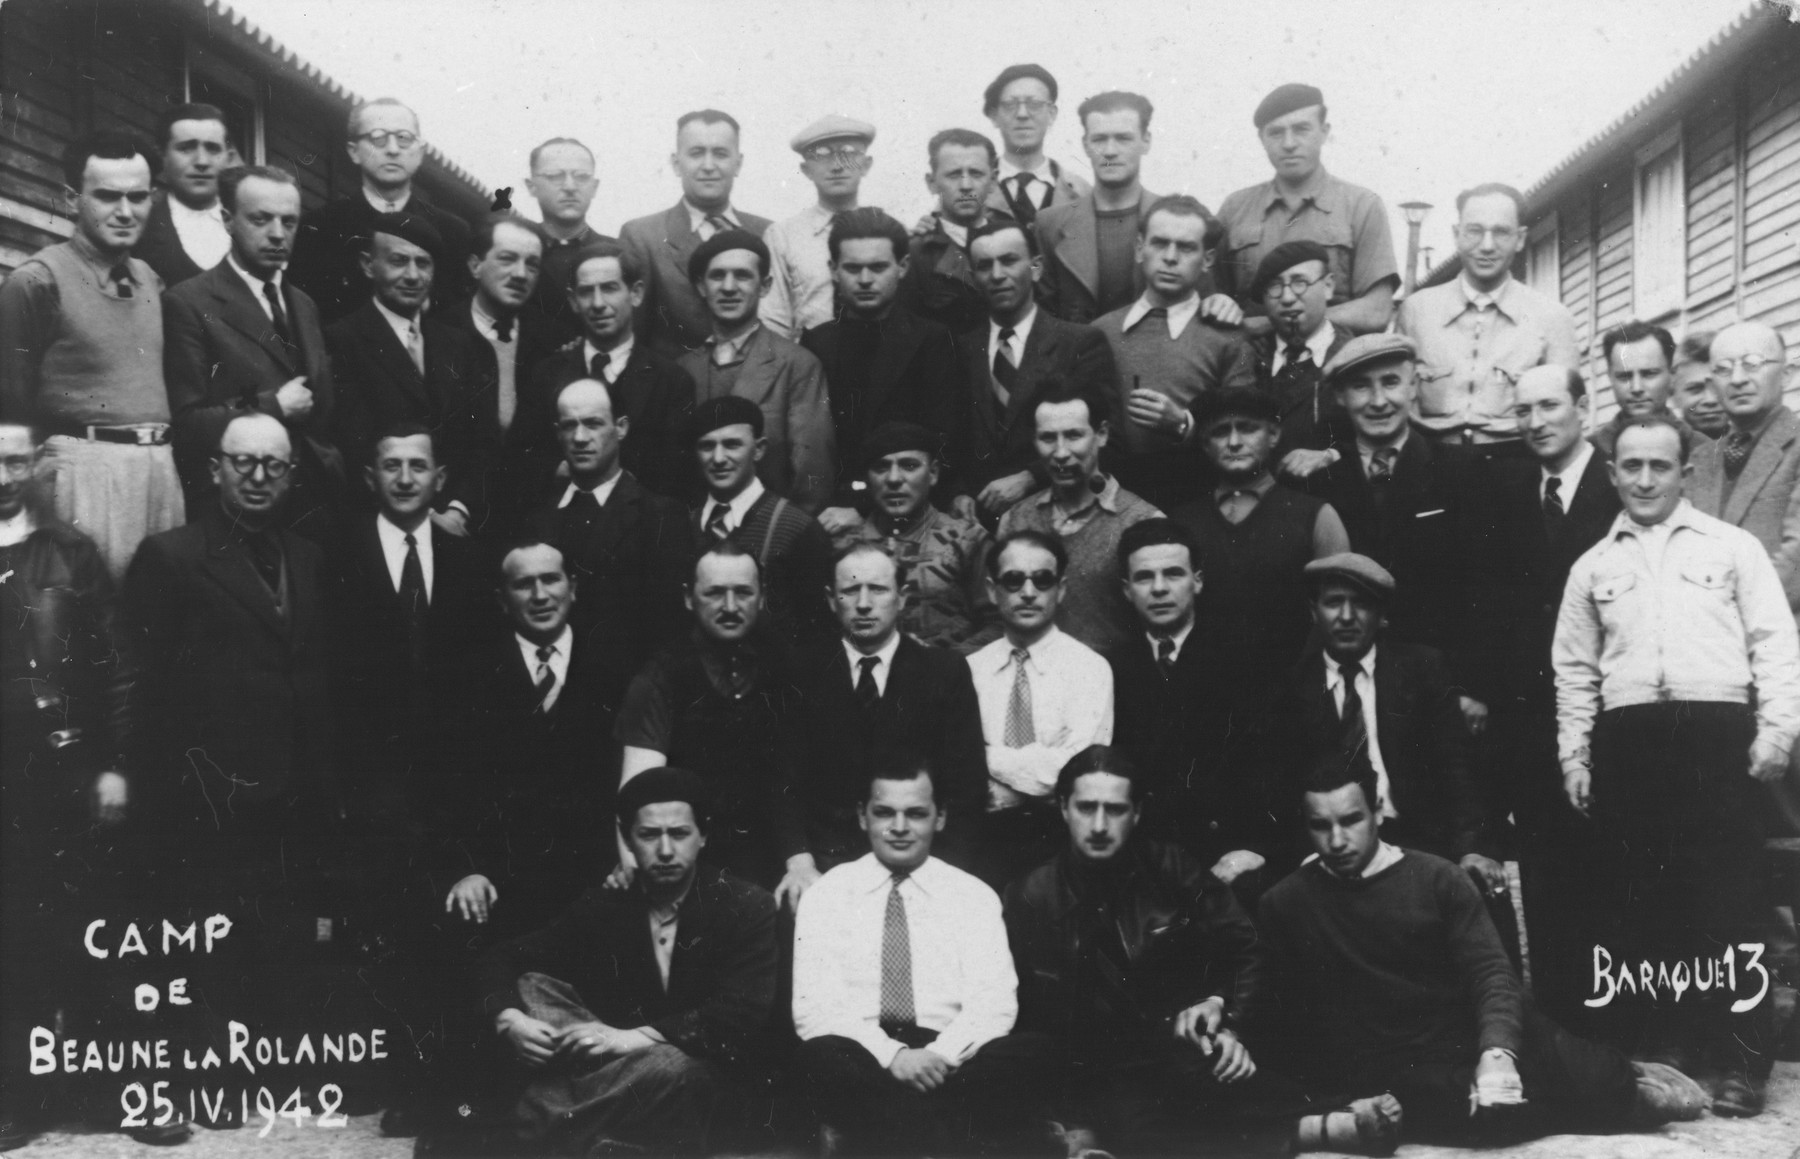 Group portrait of prisoners from barracks #13 in the Beaune-la-Rolande internment camp.  Albert Sztern is pictured on the bottom left.